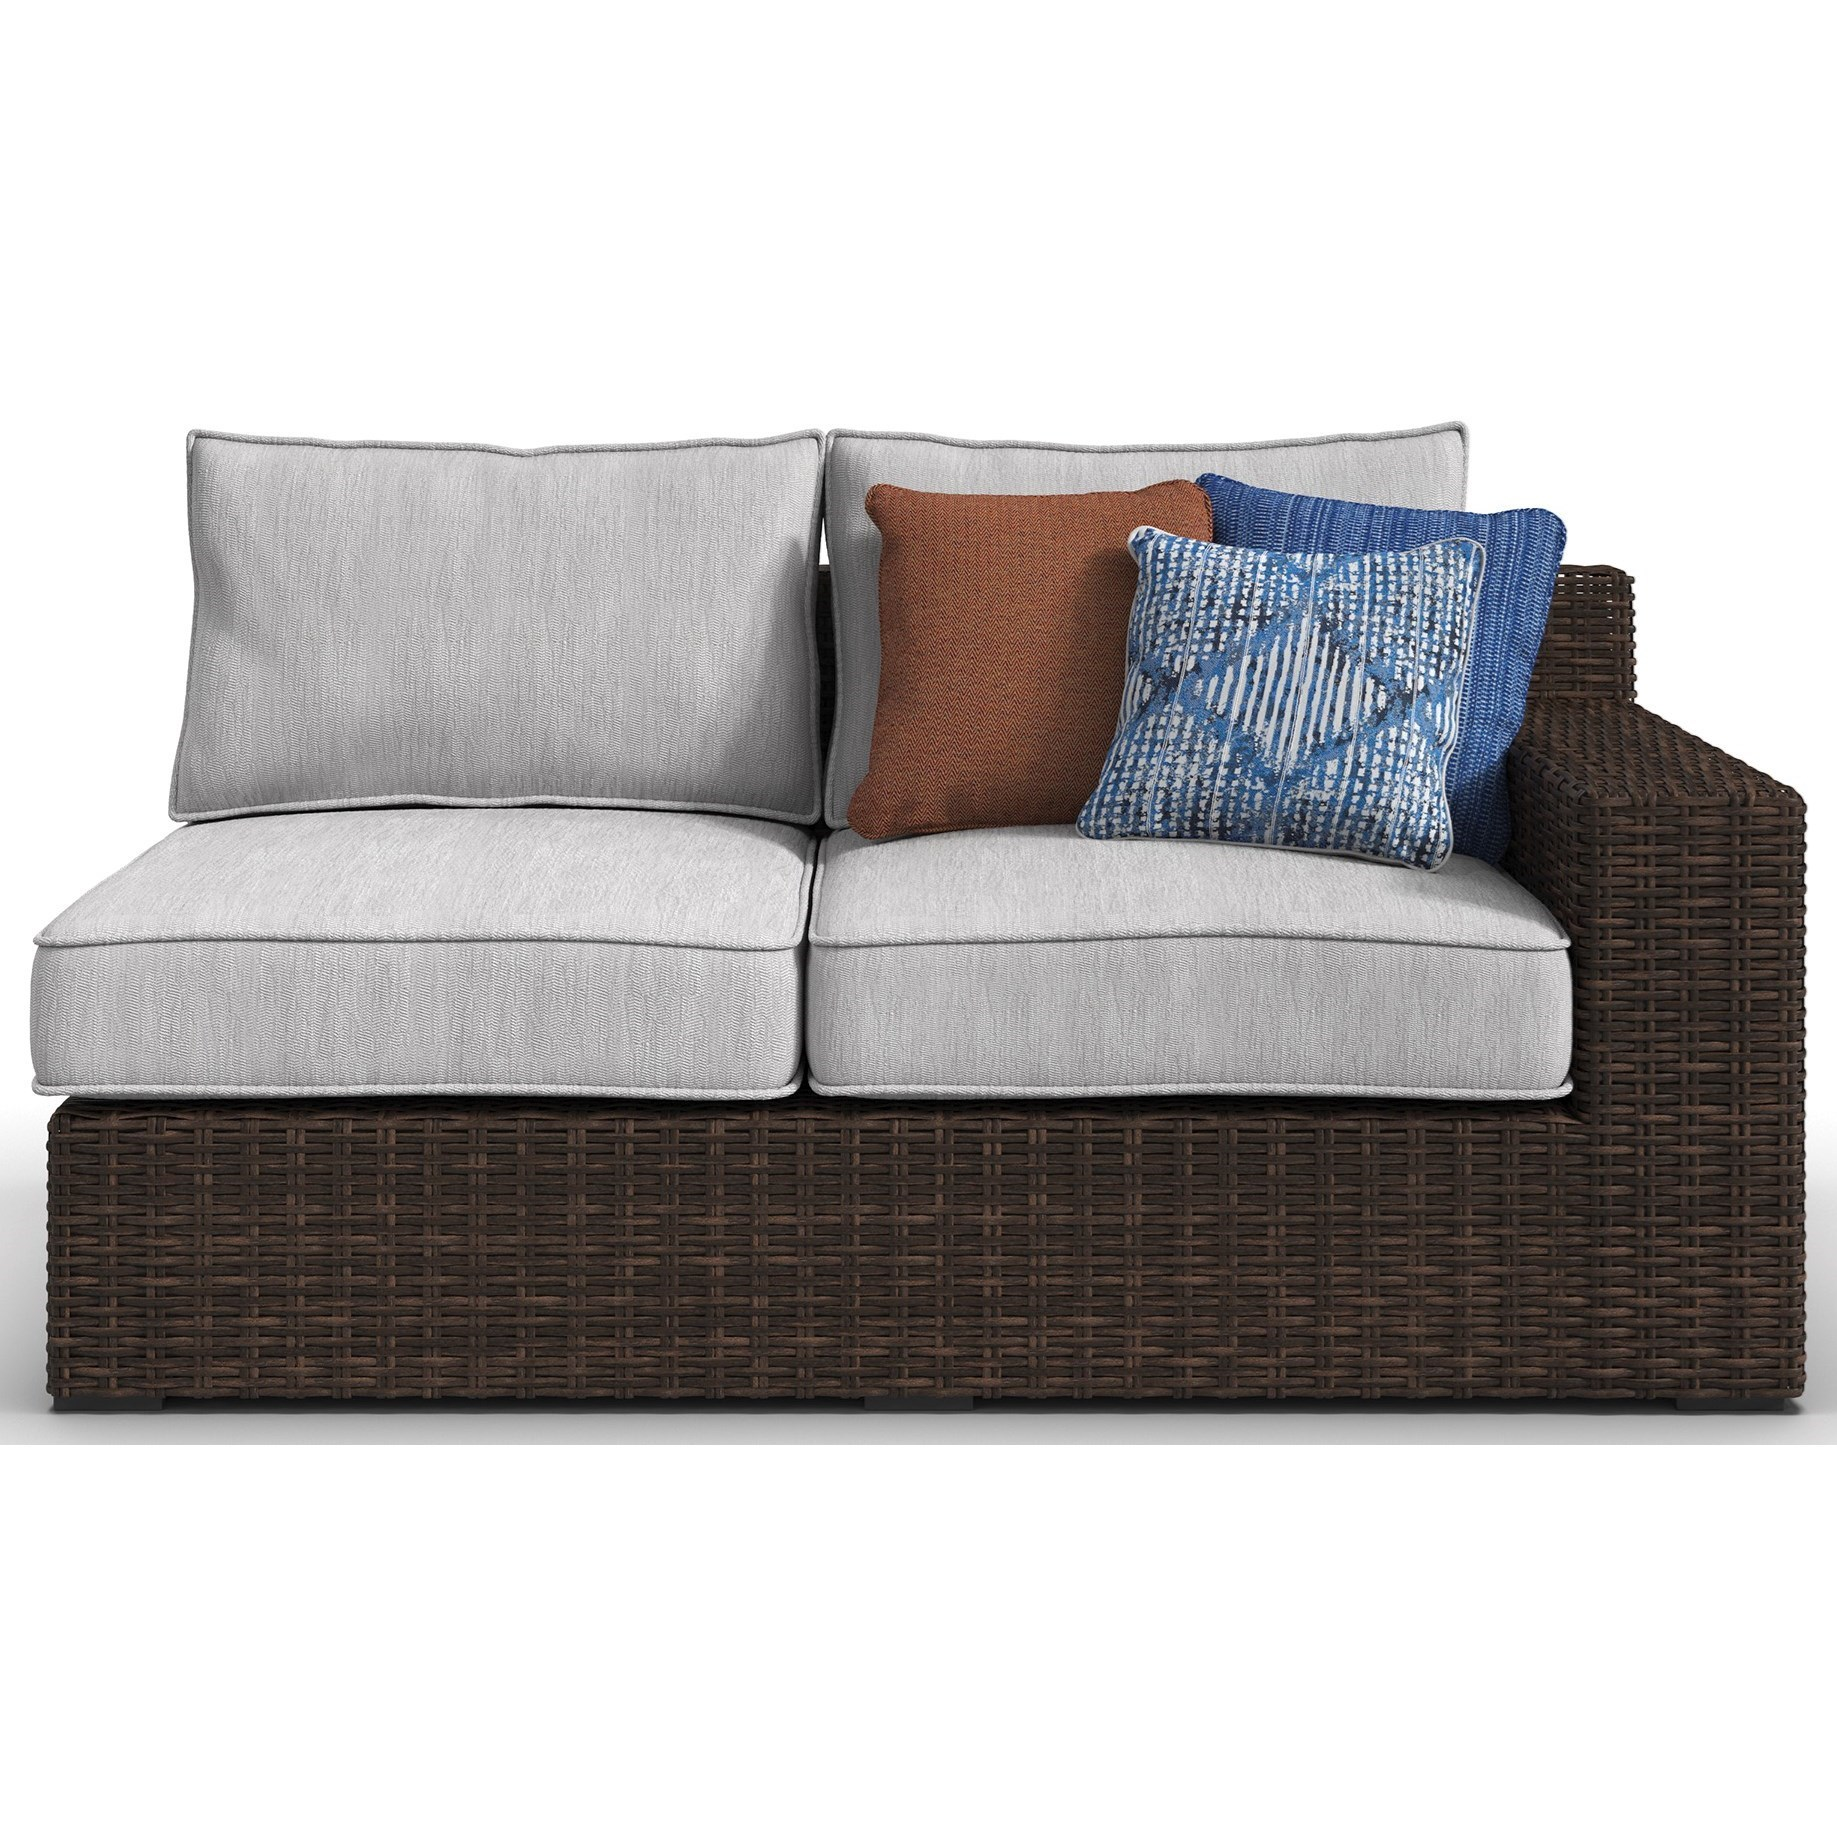 Signature Design by Ashley Alta Grande RAF/LAF Loveseat with Cushion - Item Number: P782-854